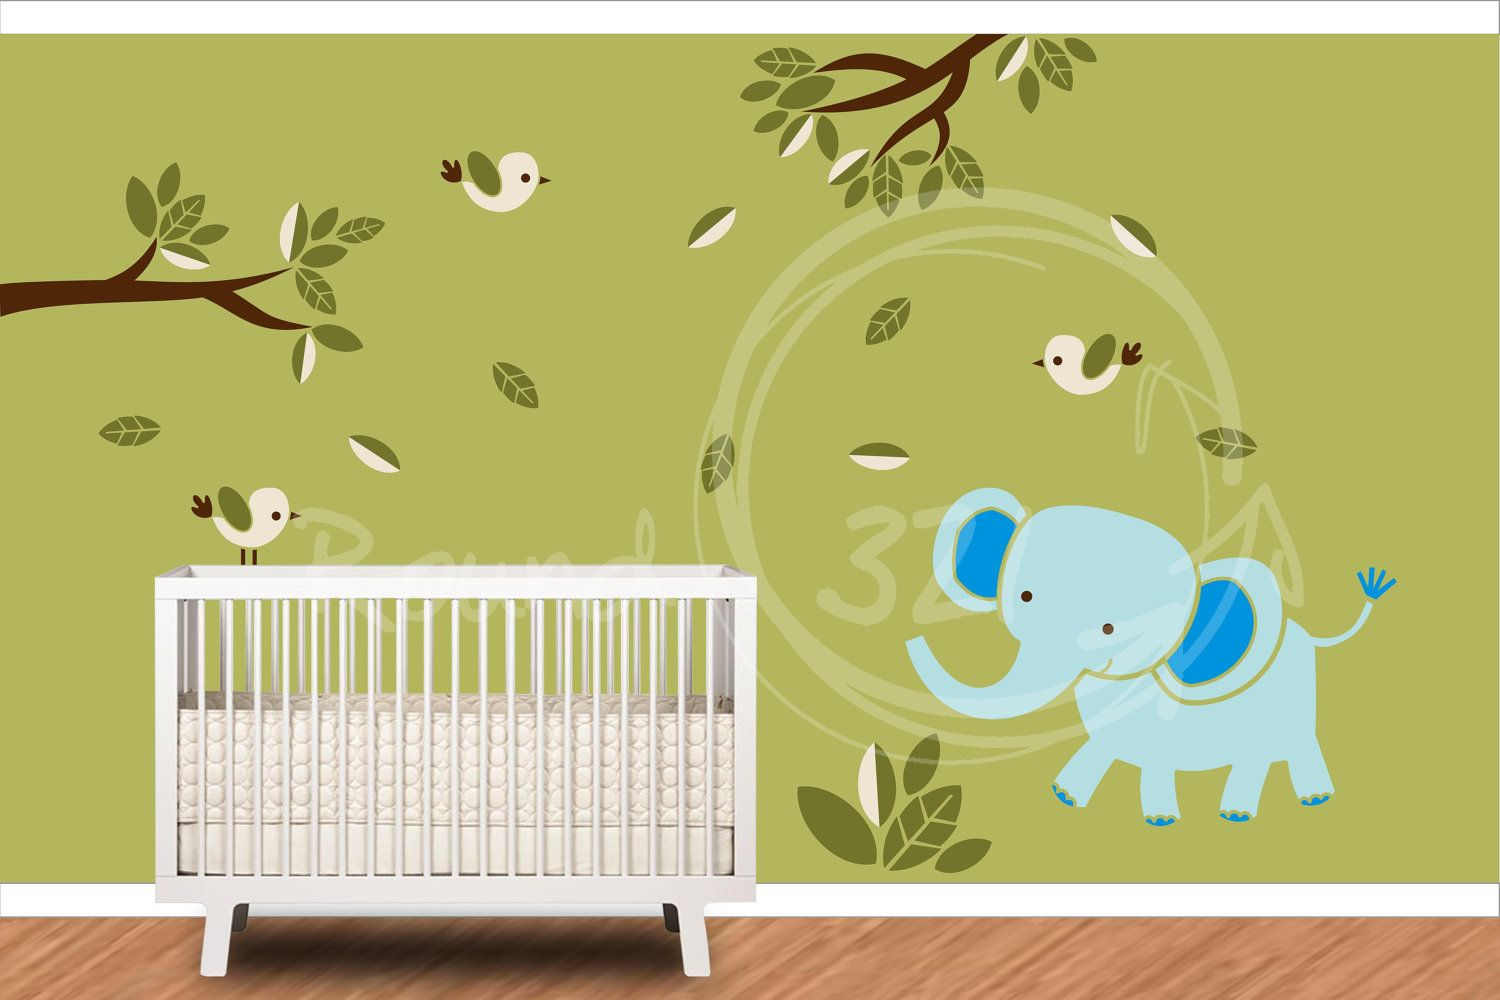 Elephant With Birds Wall Decal- Tree Branches & Leaves Jungle Theme ...